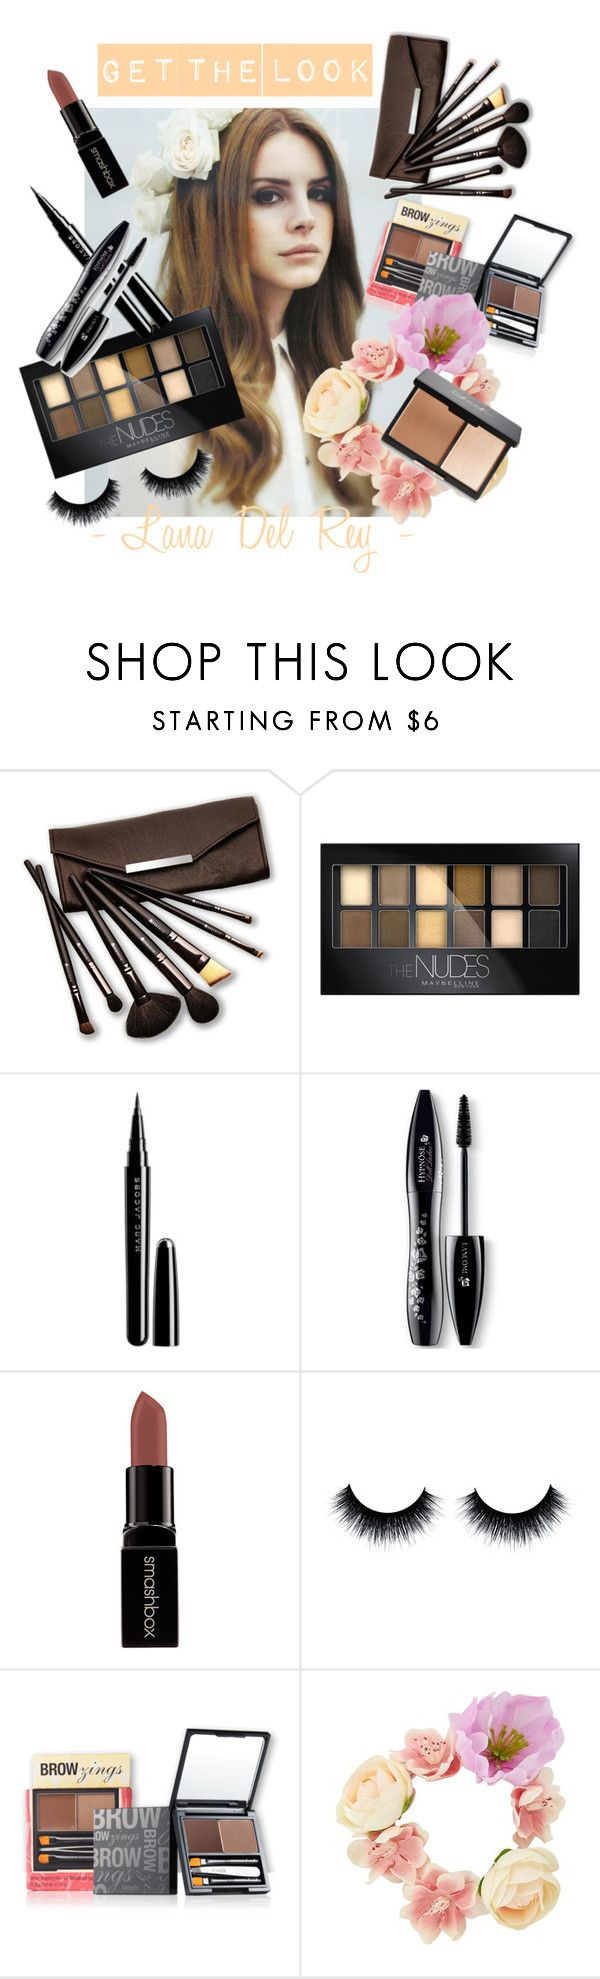 """""""Get The Look - Lana Del Rey"""" by stylebycharlene on Polyvore featuring beauty, Borghese, Maybelline, Marc Jacobs, Lancôme and Smashbox"""